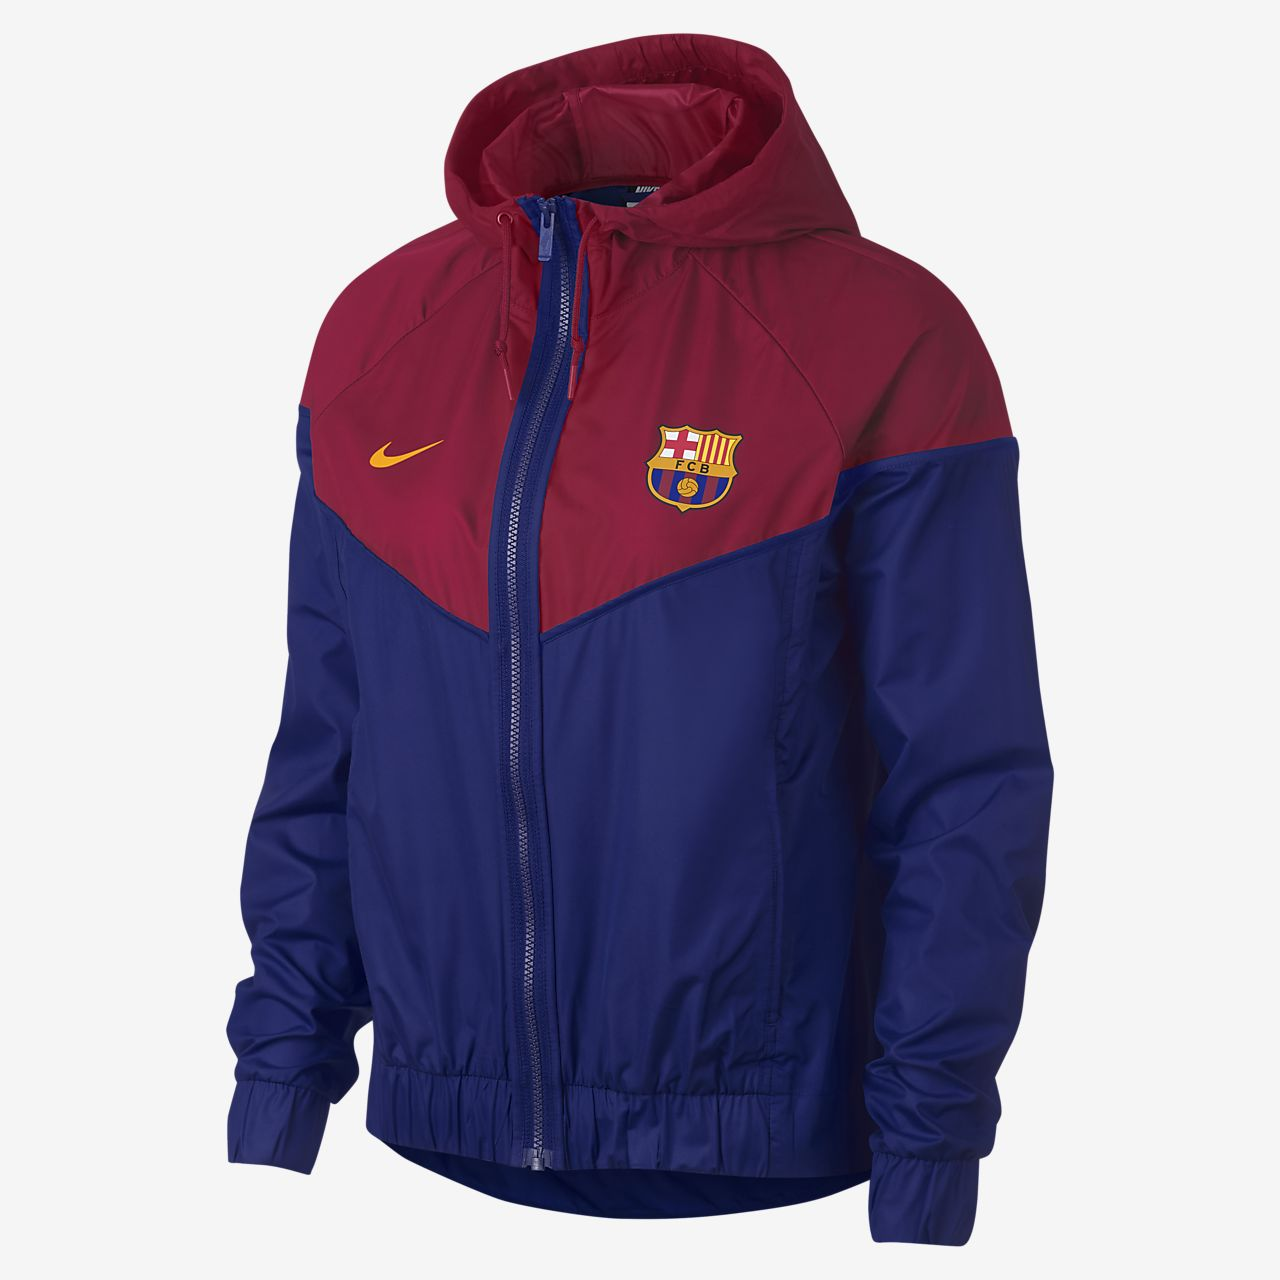 Fc Chaqueta Windrunner Windrunner Mujer Fc Mujer Barcelona Chaqueta Fc Chaqueta Barcelona Windrunner Barcelona EUvqwR